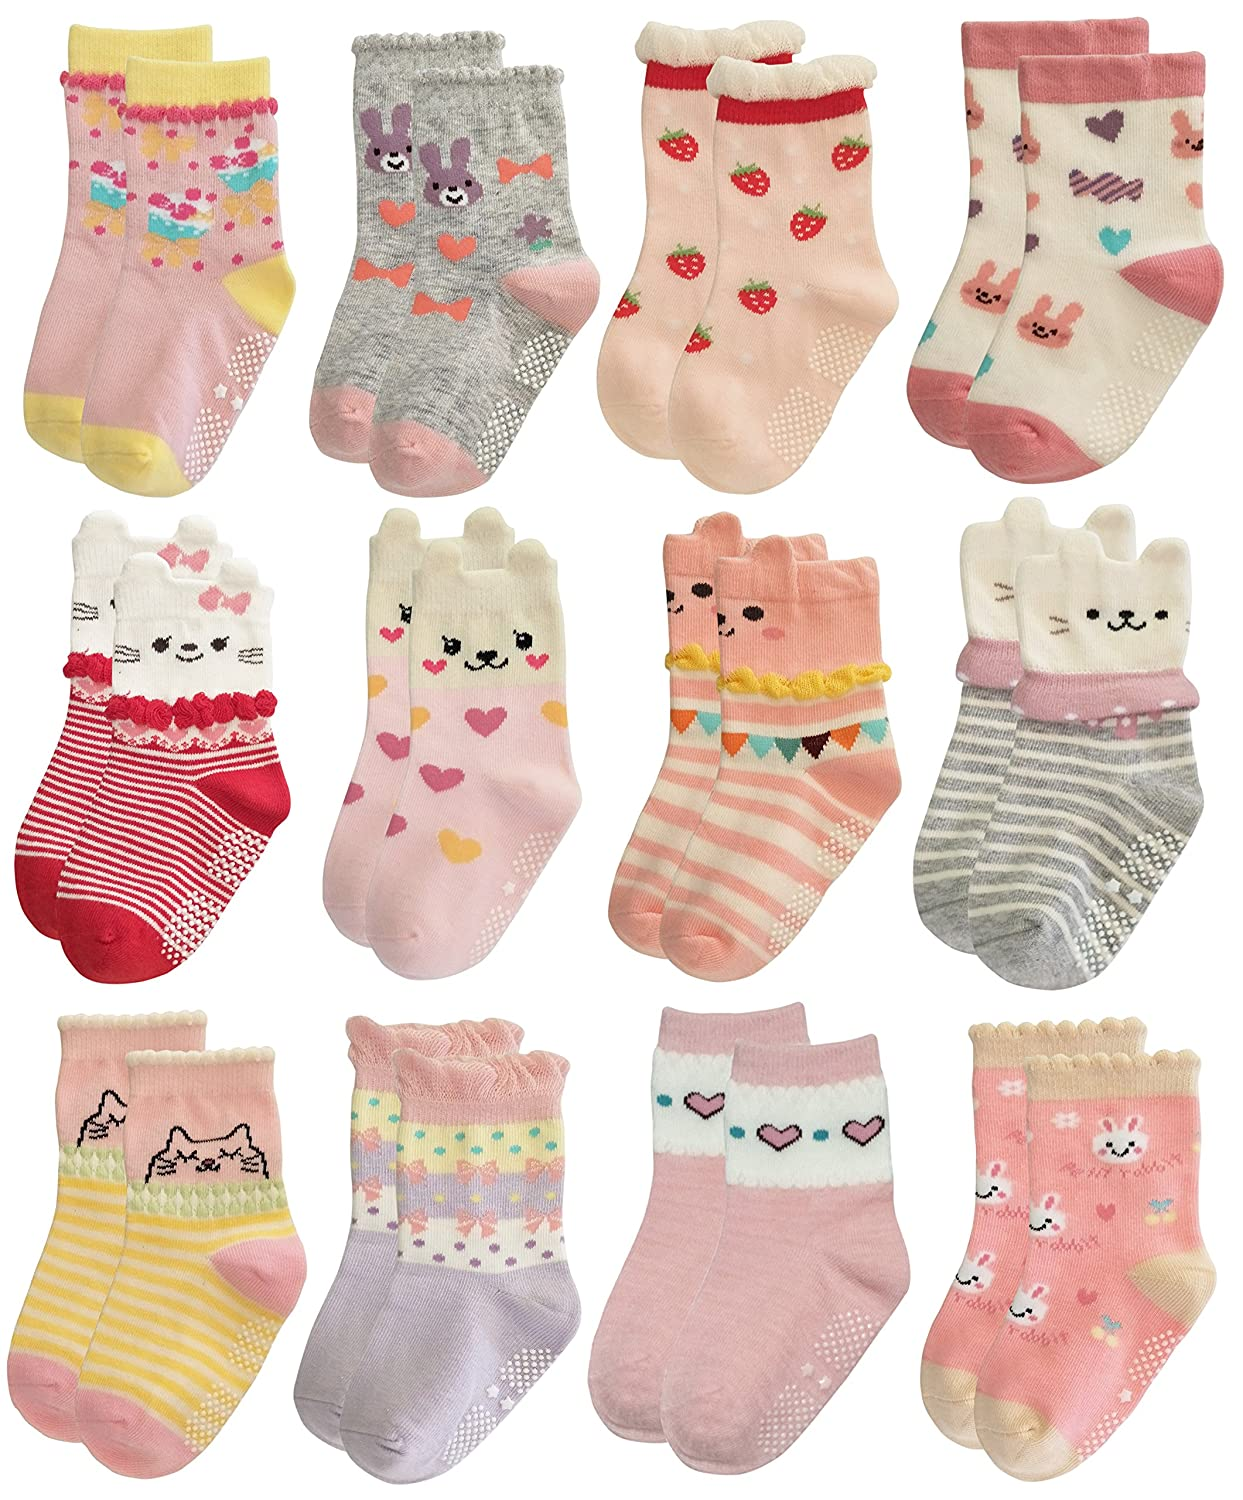 RATIVE RG-82021 Non Skid Cotton Crew Socks With Grips For Baby Toddler Girls